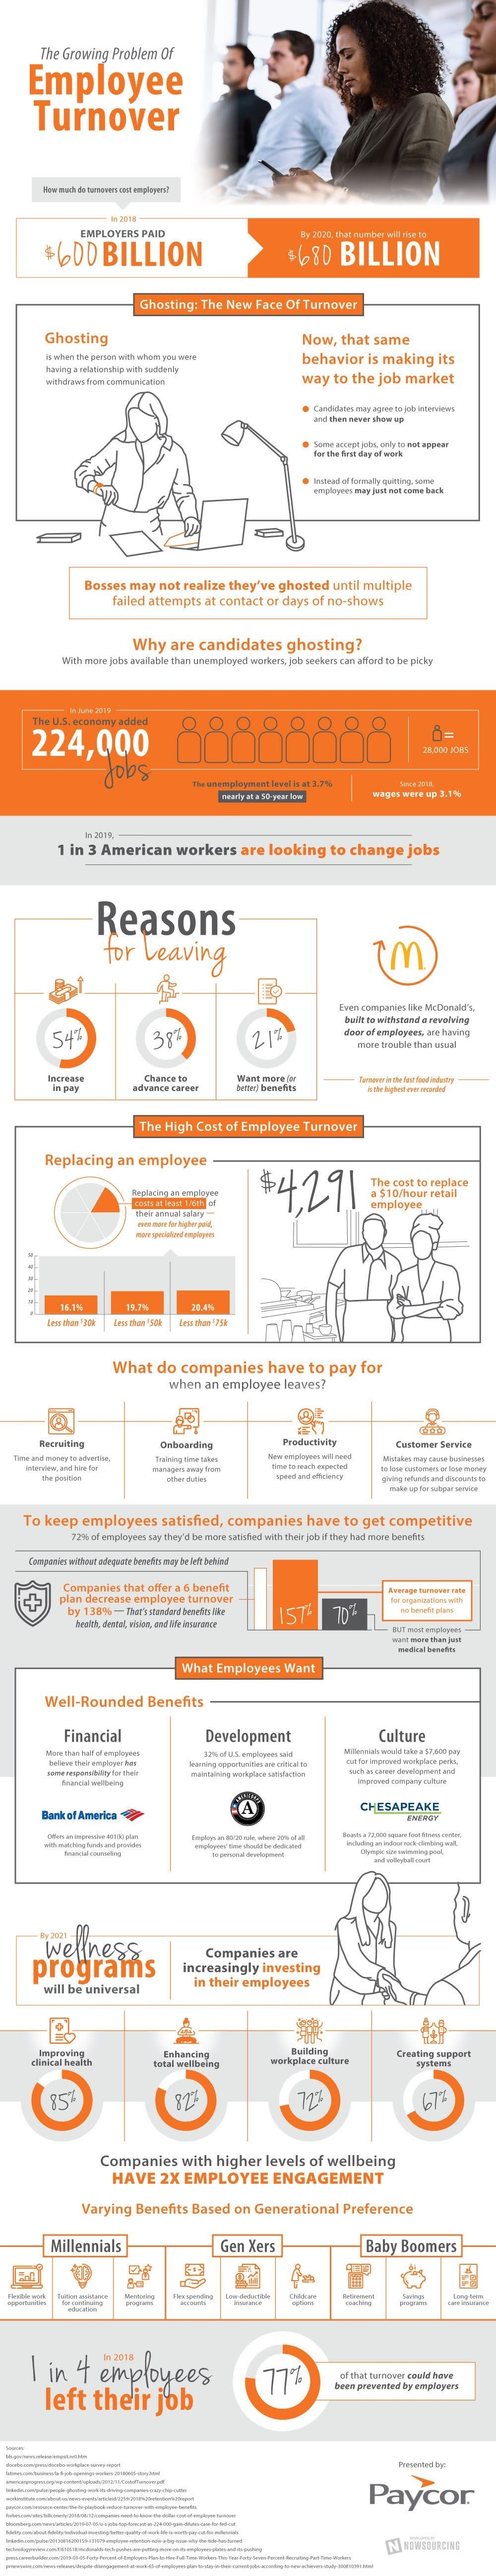 Preventing Turnover With Benefits #infographic